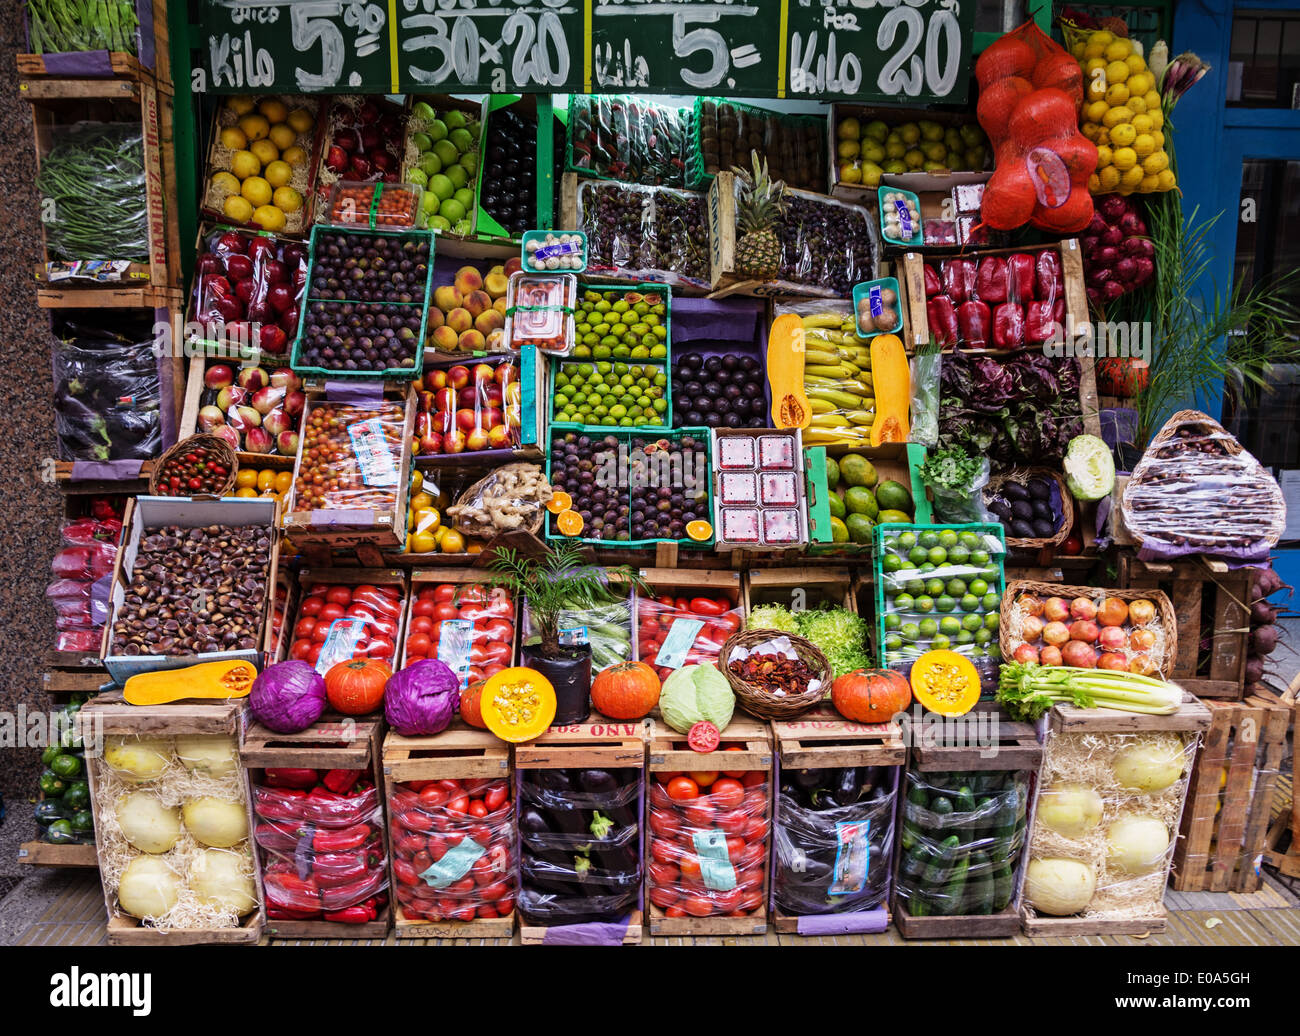 fruit and vegetable market display in mar del plata argentina stock